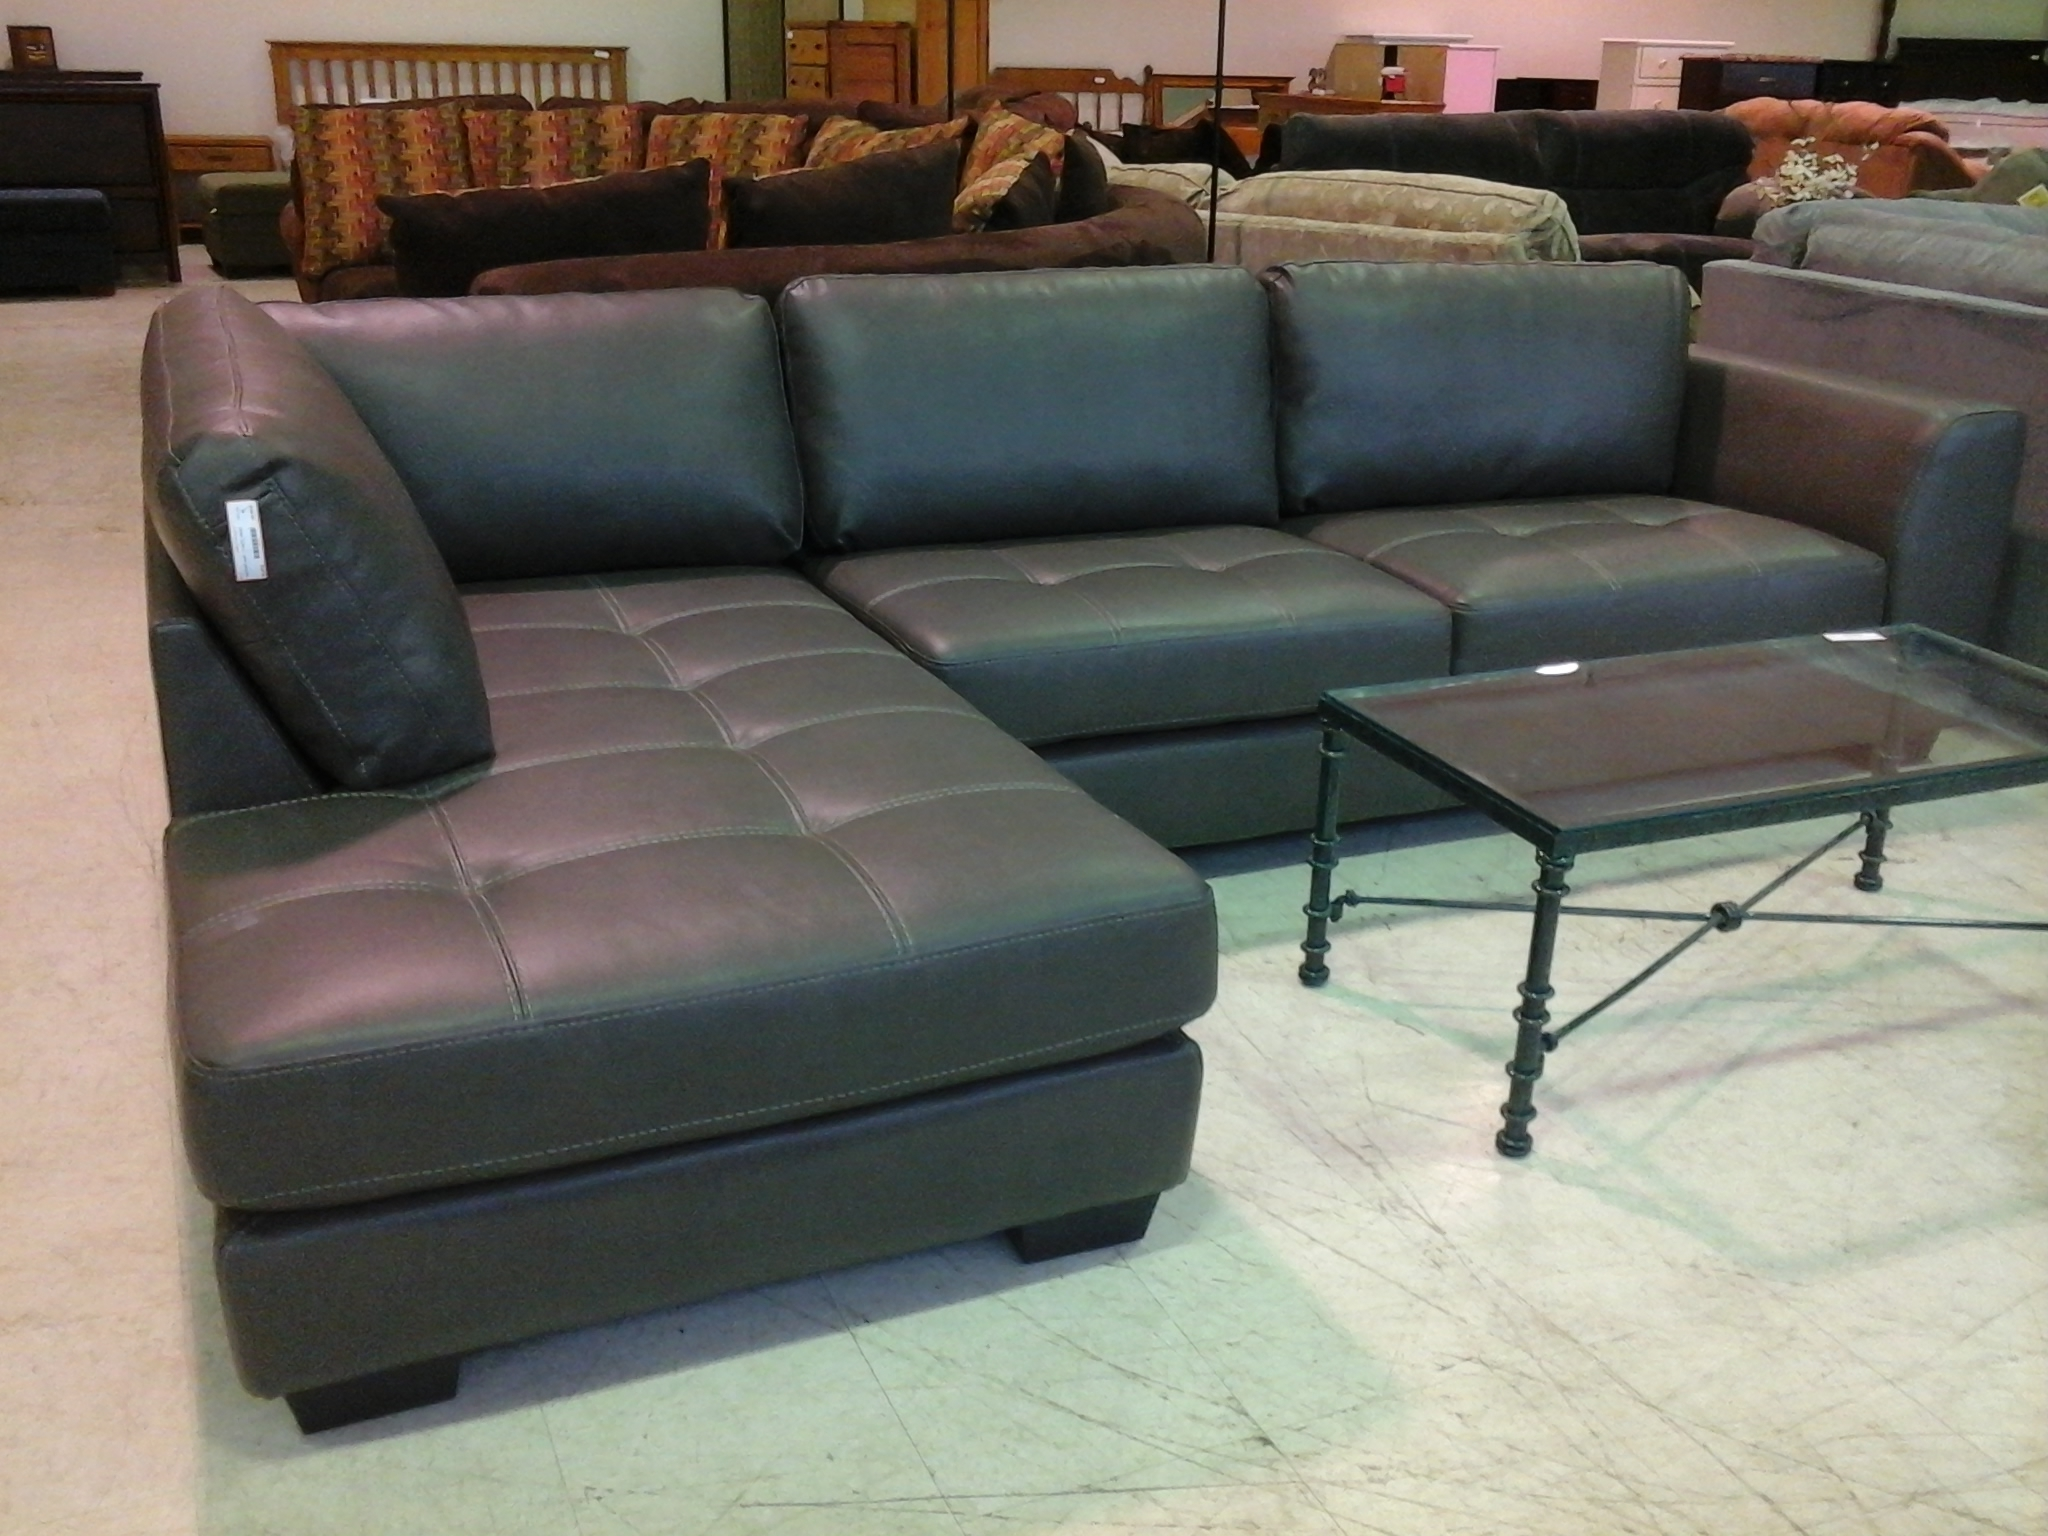 Most Recently Released Charcoal Sectionals With Chaise For Living Room Greyectionalofa With Chaise Reclining And Metropolitan (View 11 of 15)